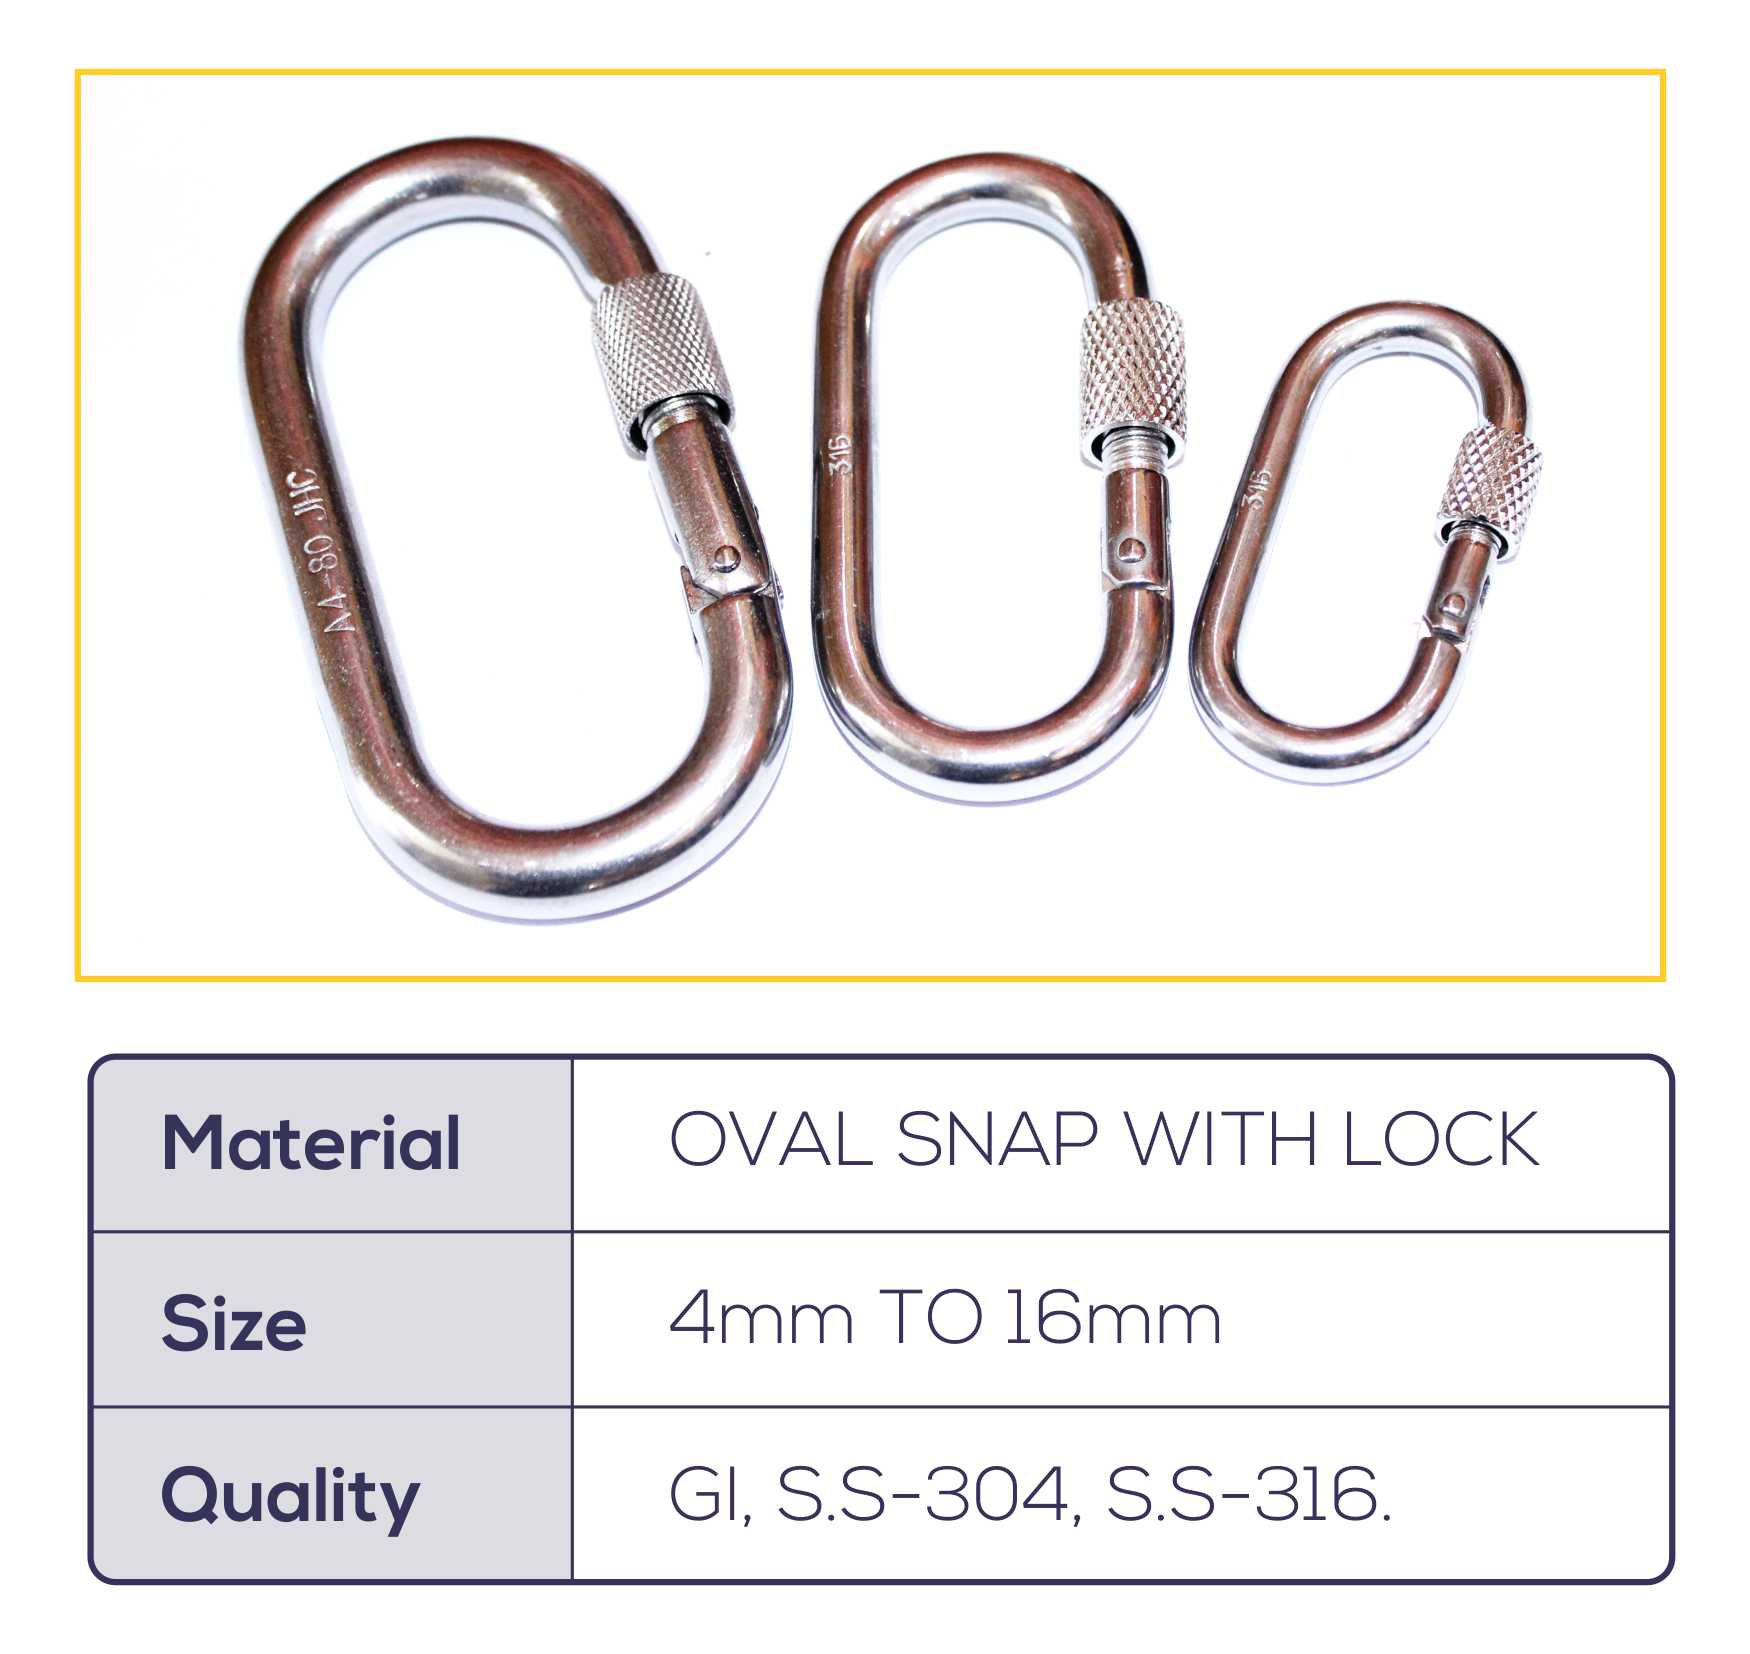 OVAL SNAP HOOK WITH LOCK